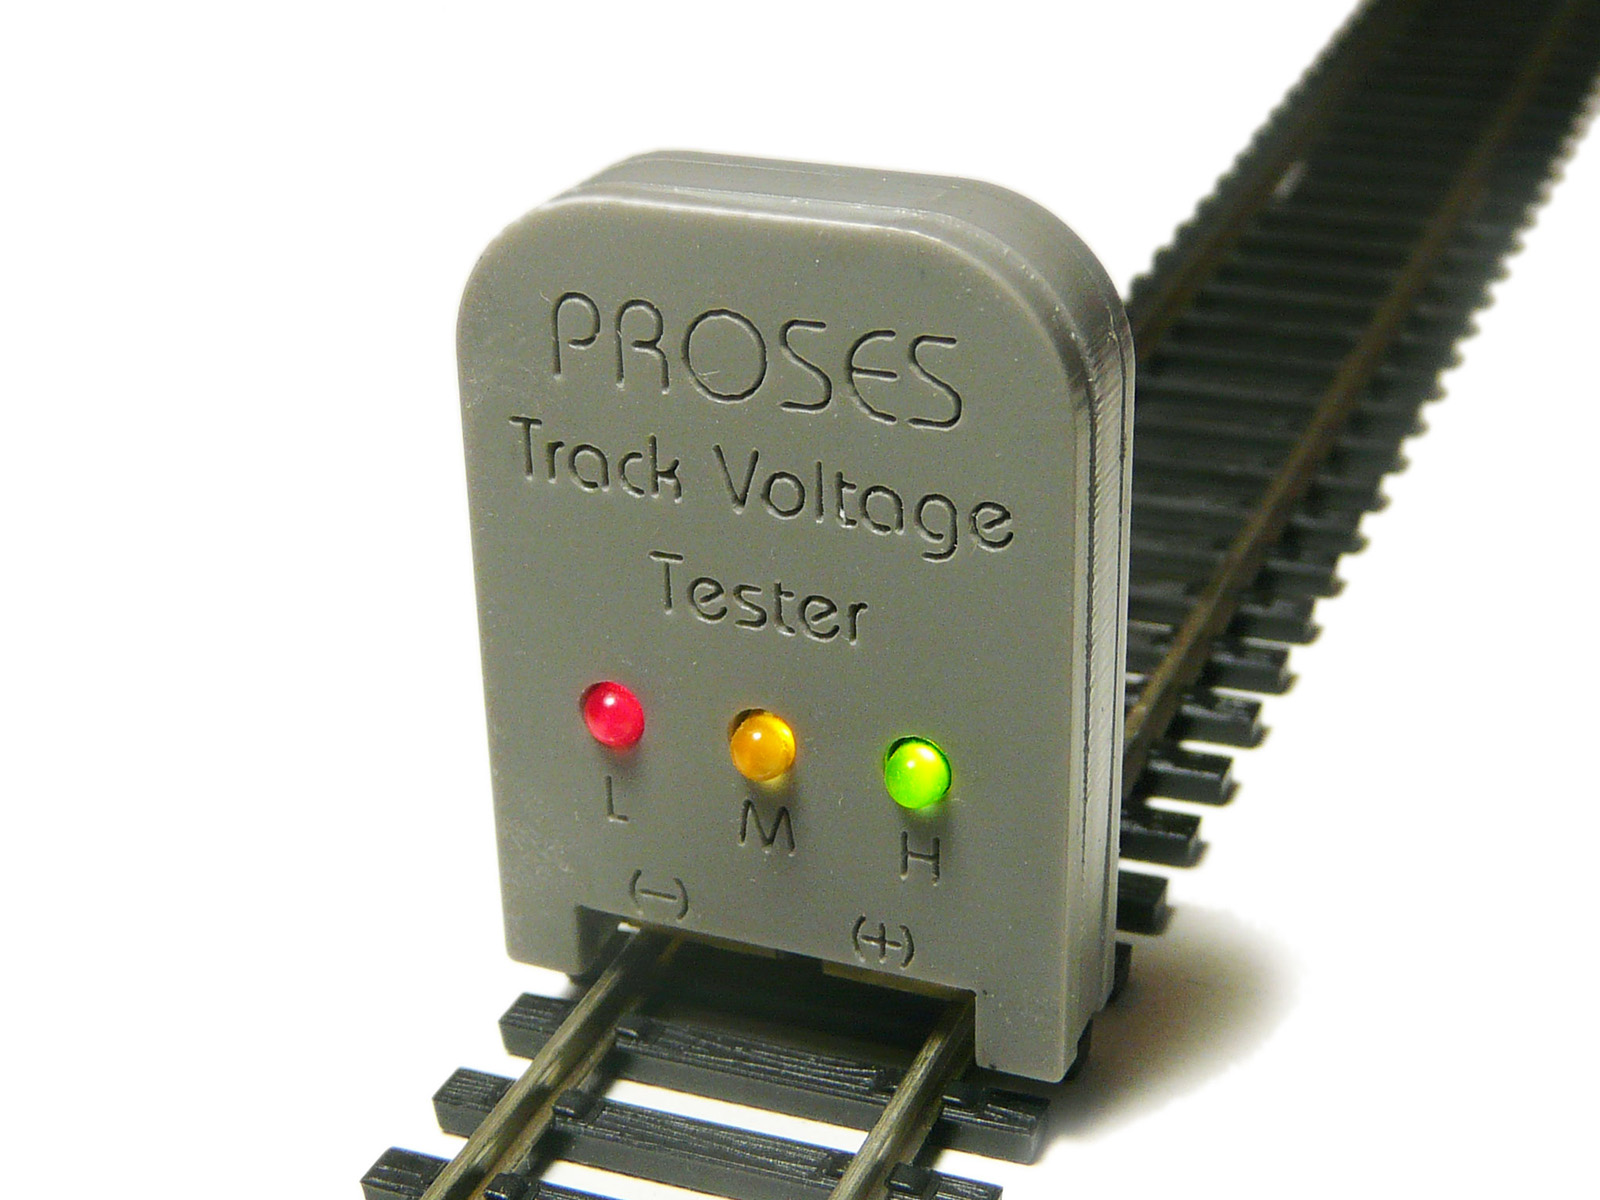 BAC39012 Bachmann Industries Track Voltage Tester 160-39012